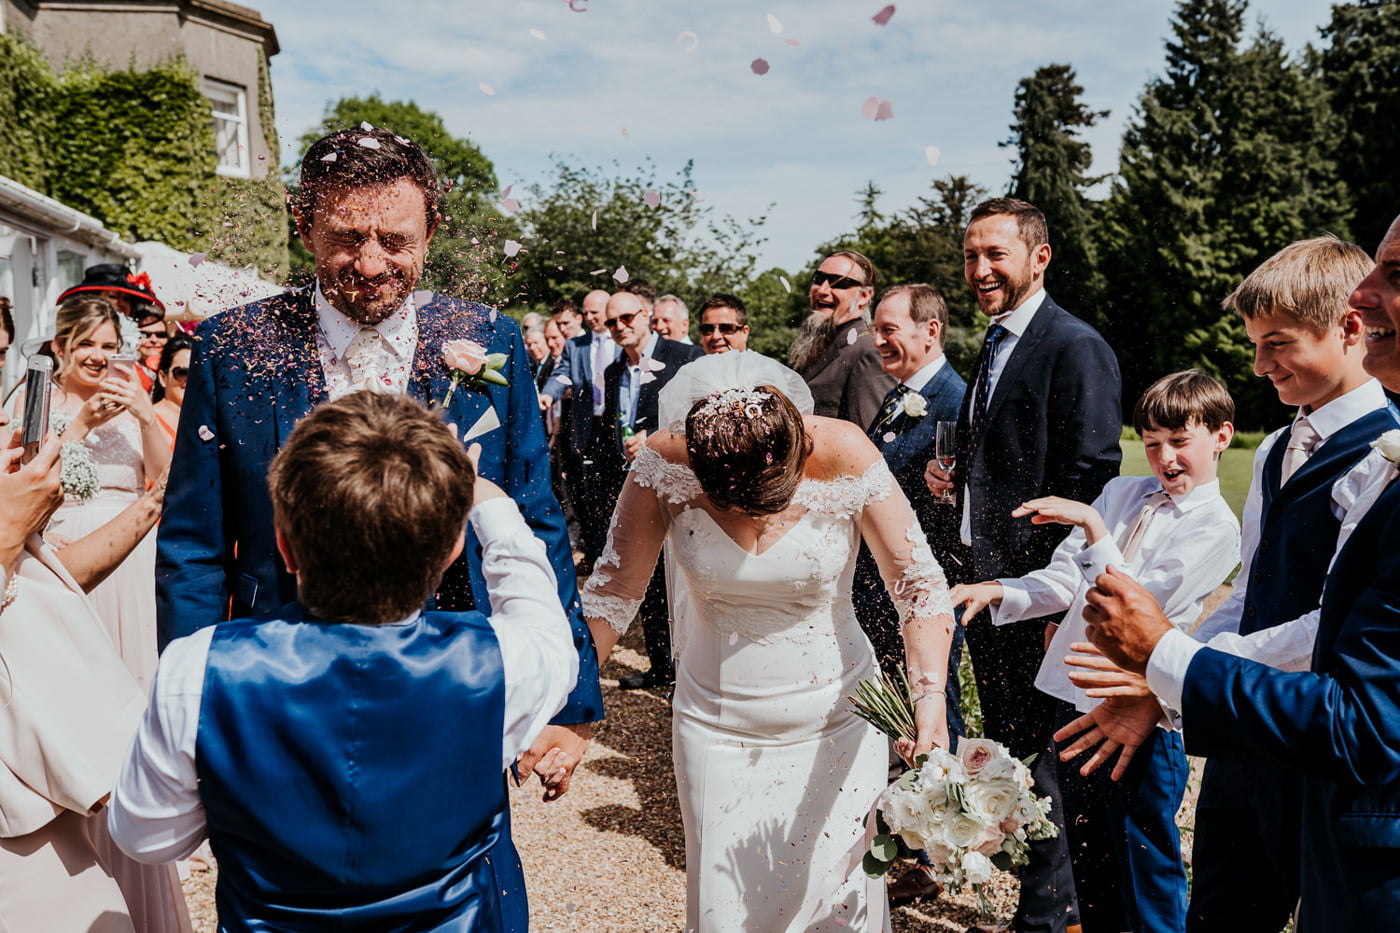 bride and groom getting confetti thrown in faces